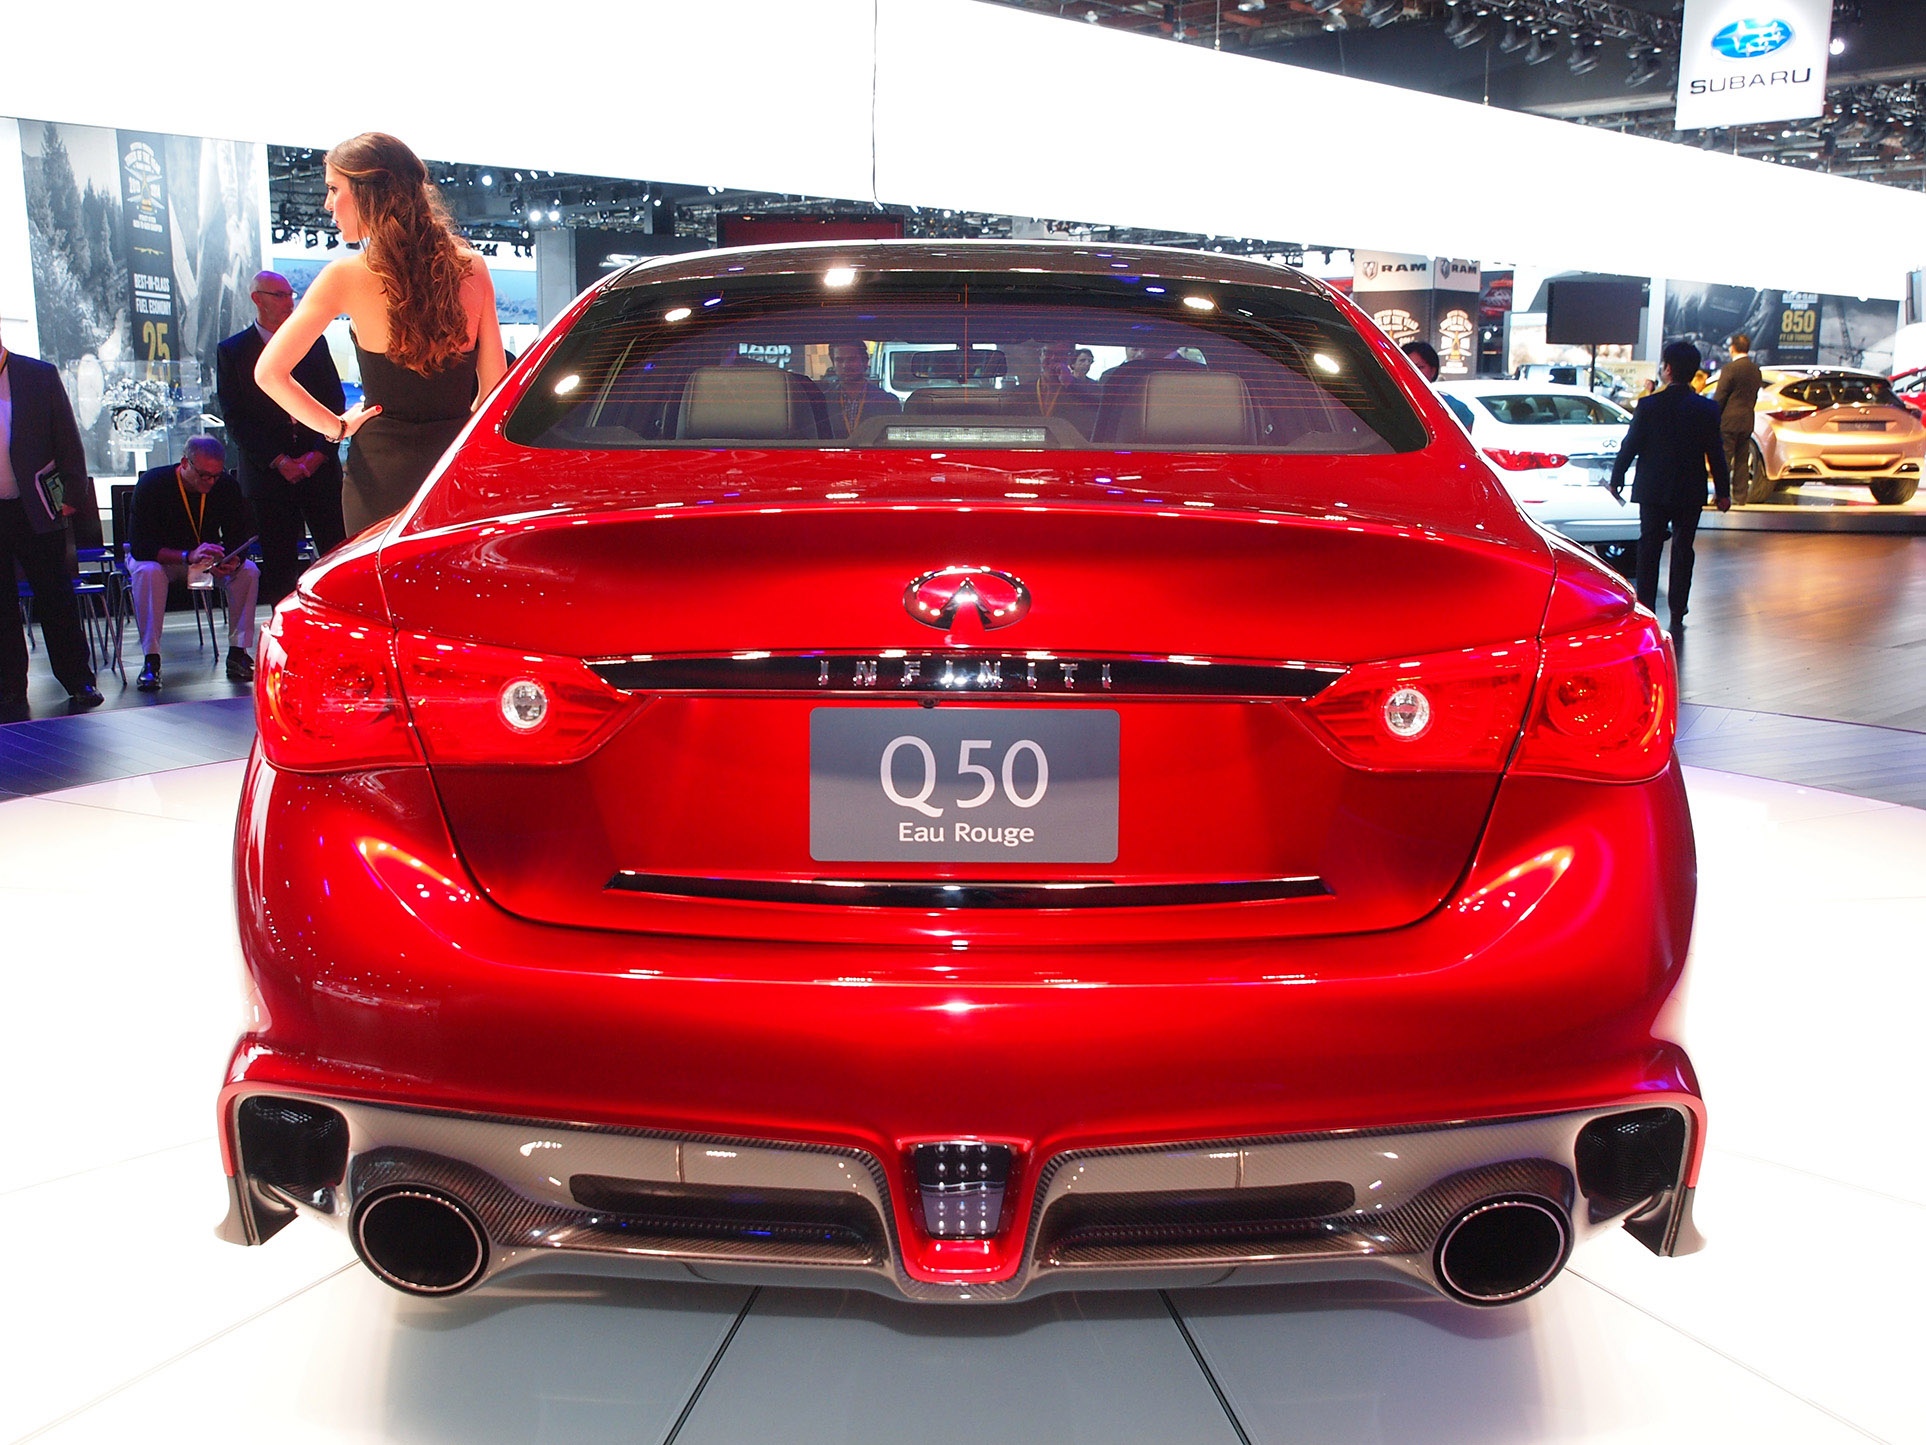 Luxury Car Interior Wallpapers Infiniti Q50 Eau Rouge At 2014 Goodwood